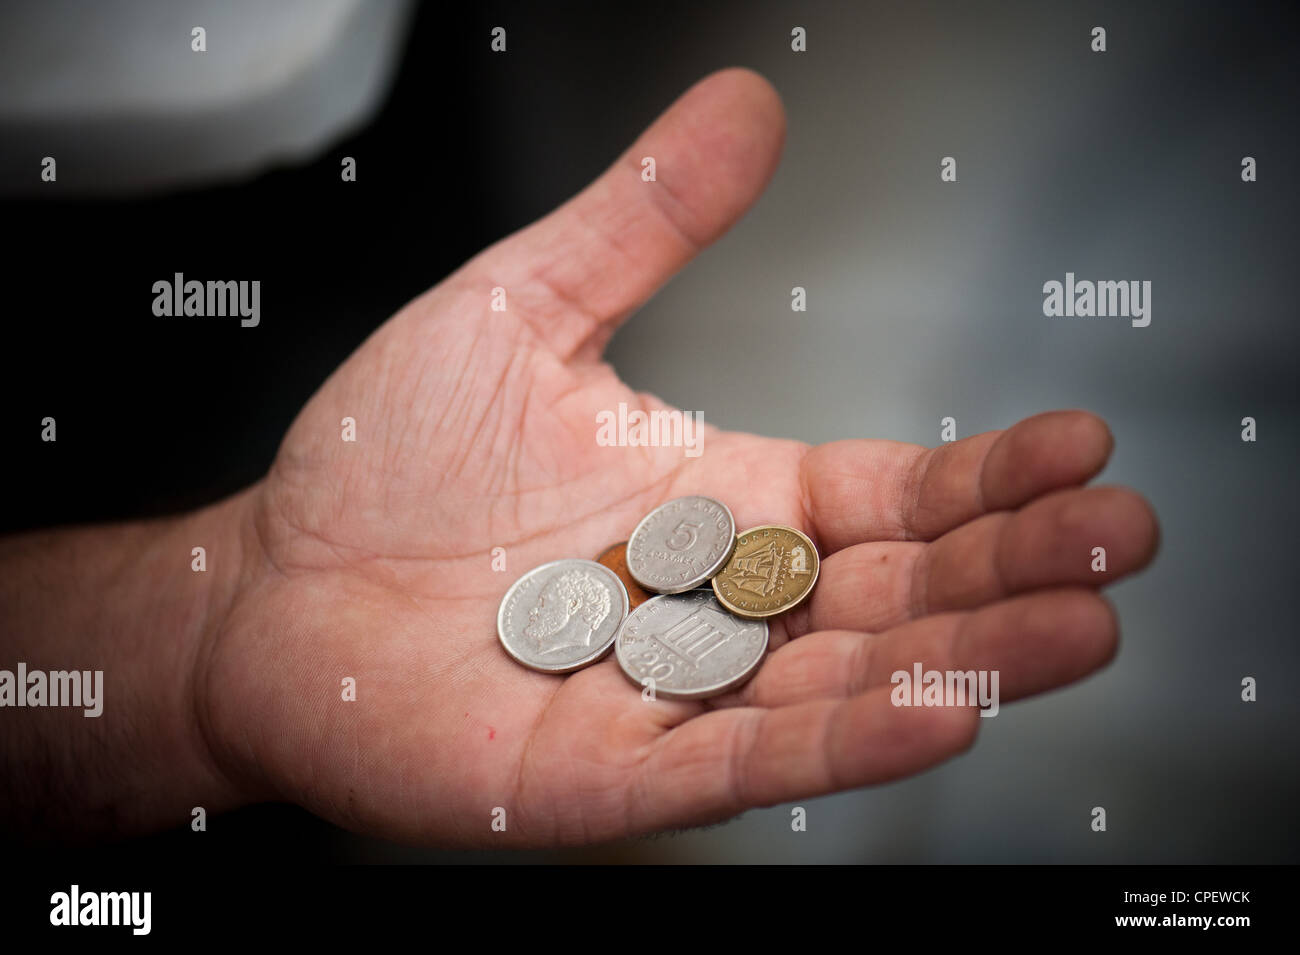 Old drachma cooing replaced in 2002 by the euro - Stock Image